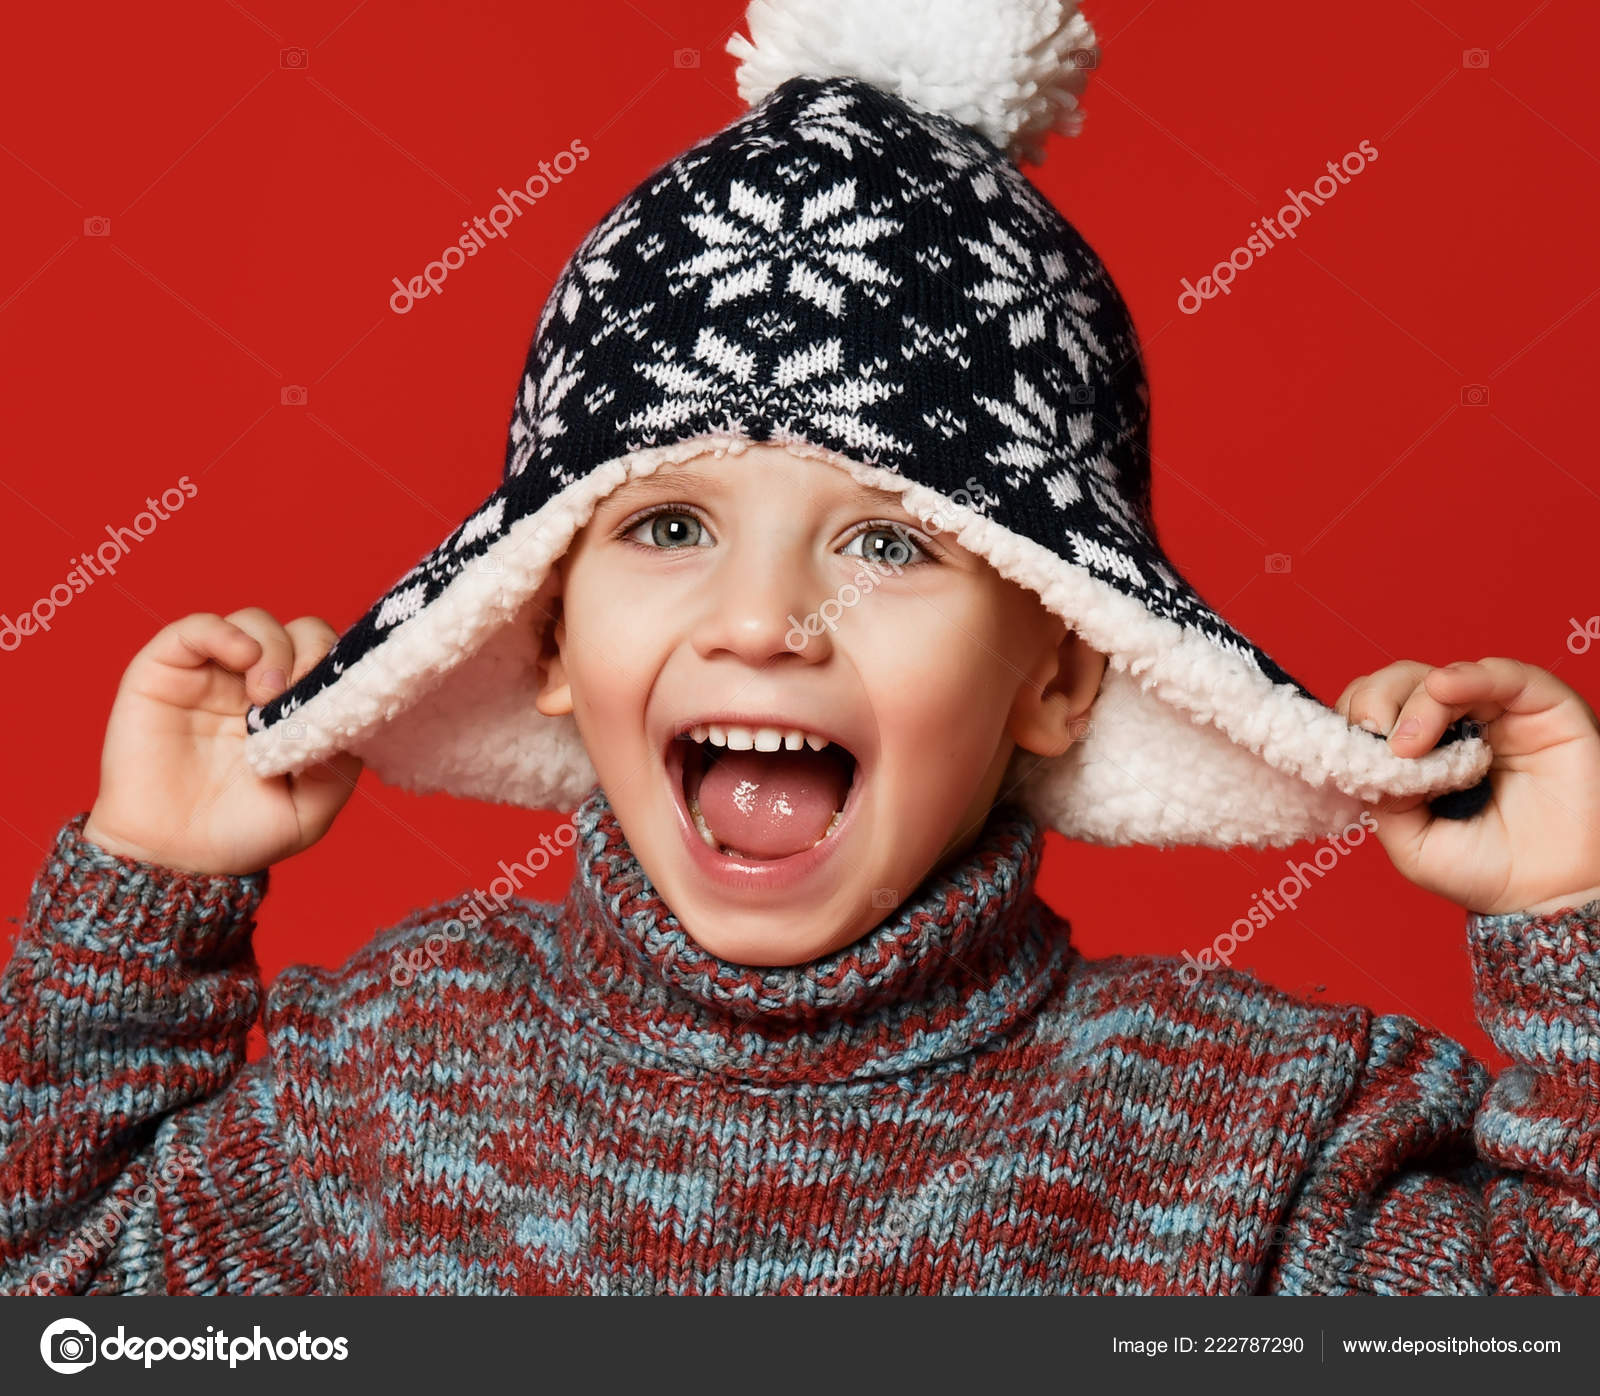 dc7c6ae90d8 Happy child boy toddler in knitted hat and sweater having fun screaming  laughing with open mouth close up winter composition over red background.